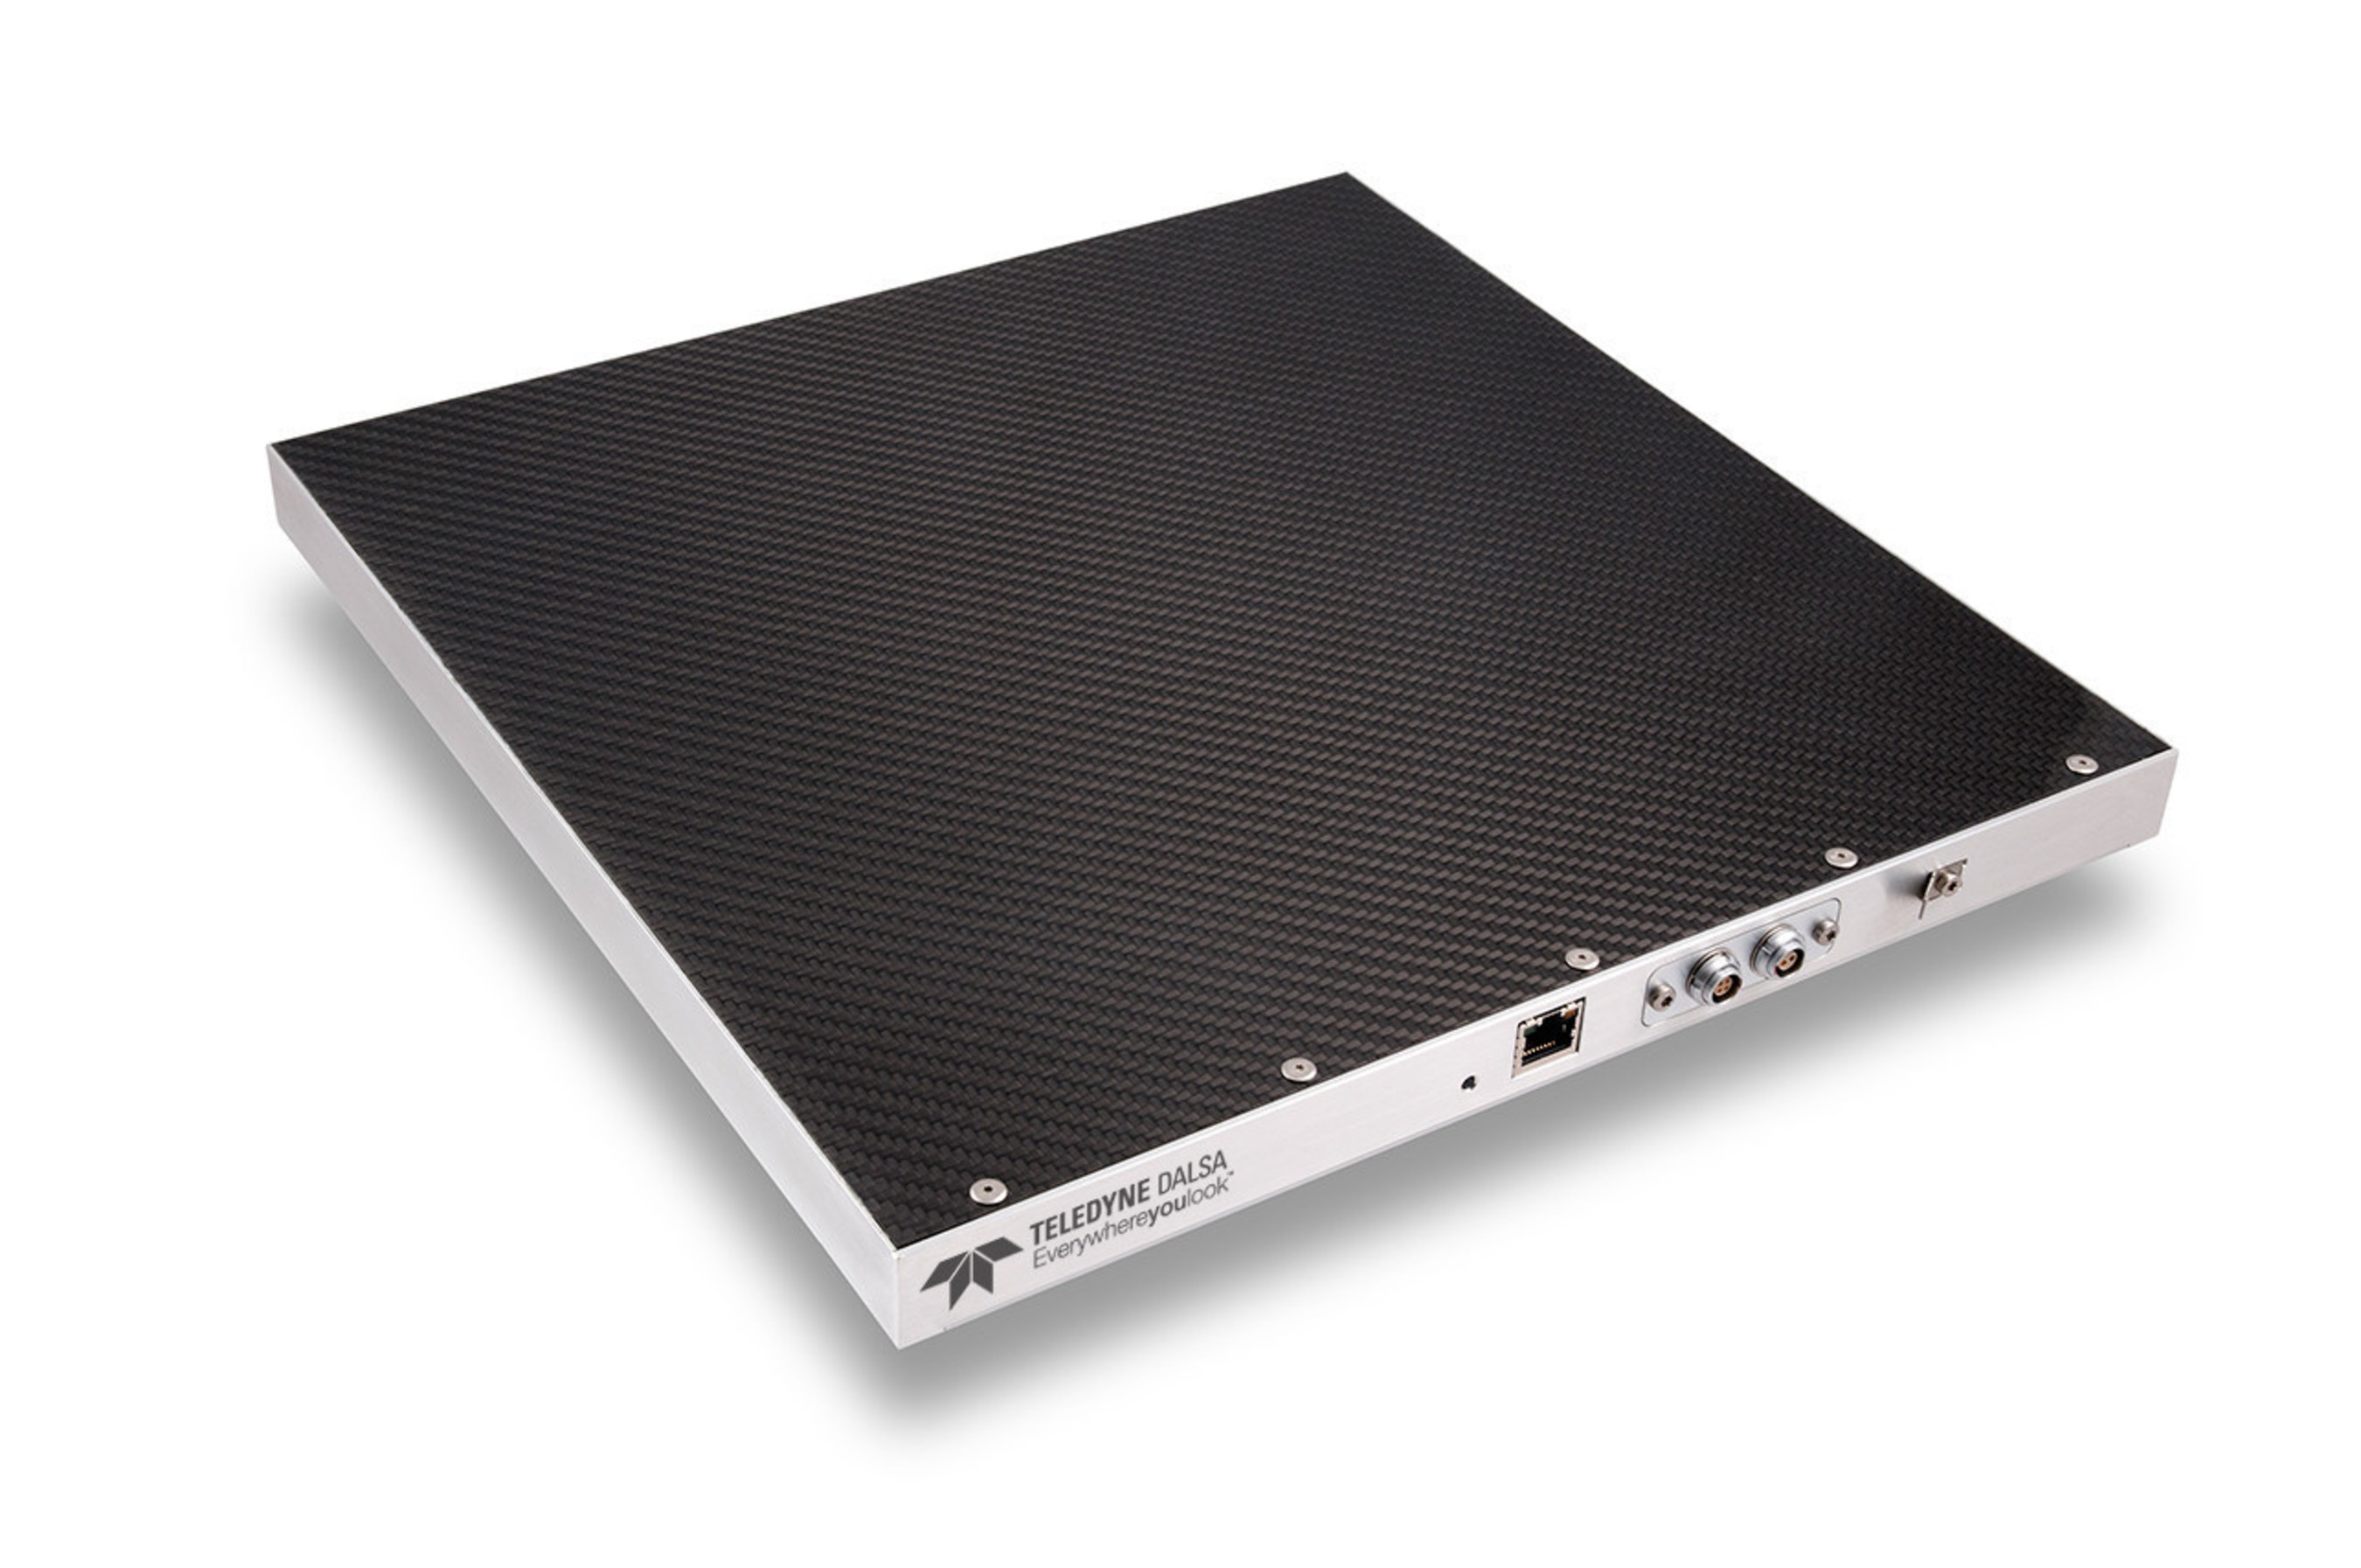 The Xineos-2329 large format CMOS flat x-ray detector for mammography is just one model in Teledyne DALSA's extensive portfolio of high resolution, low noise digital detectors.